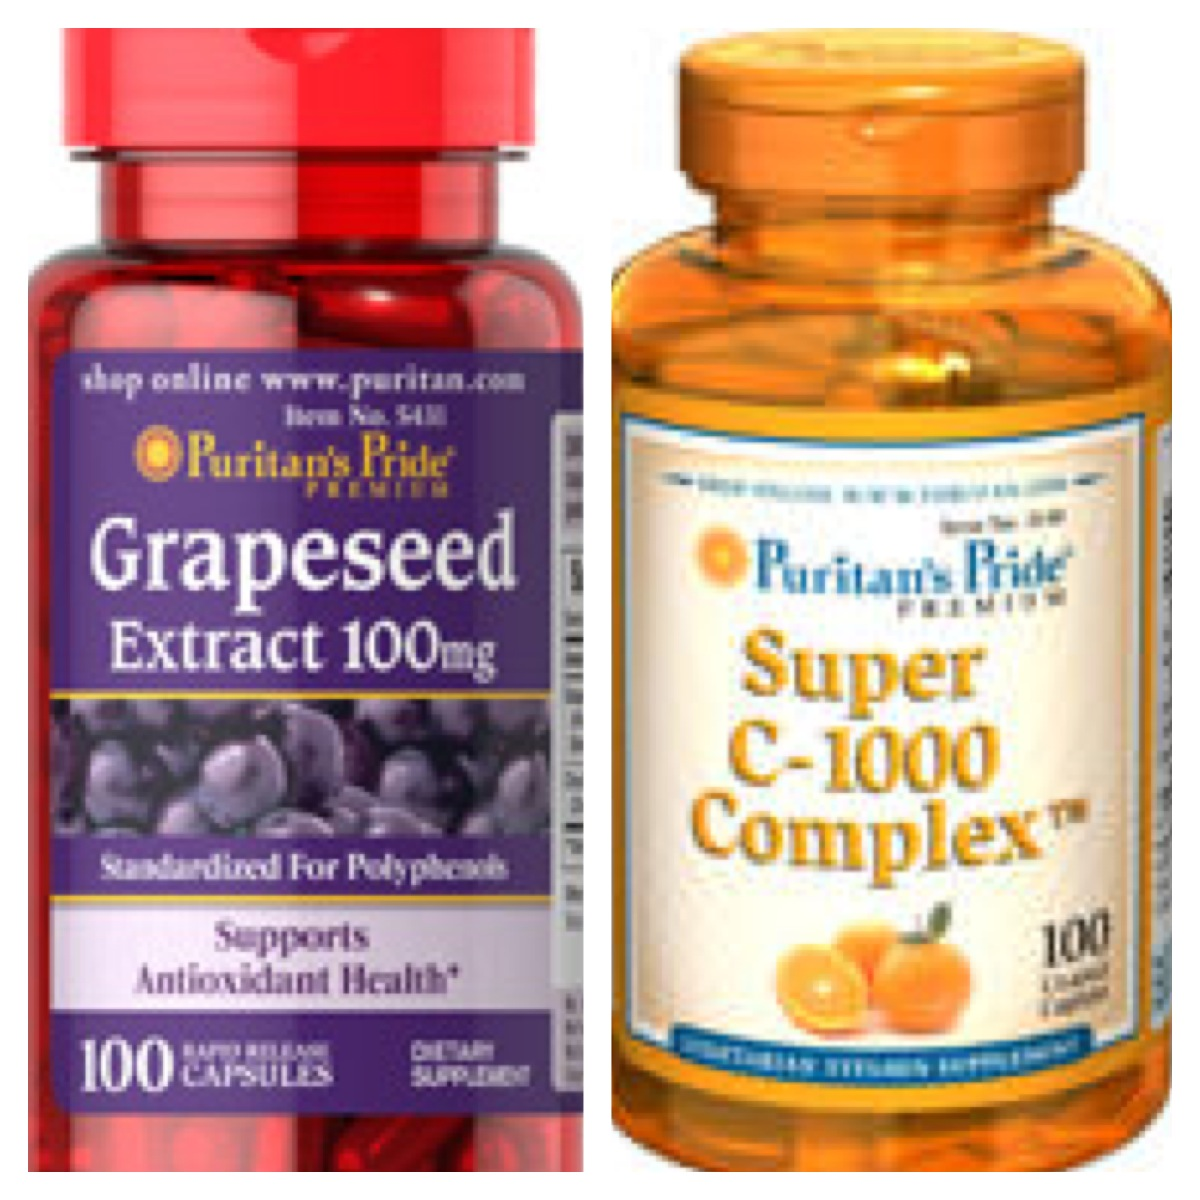 Super Vitamin C & Grapeseed Extract